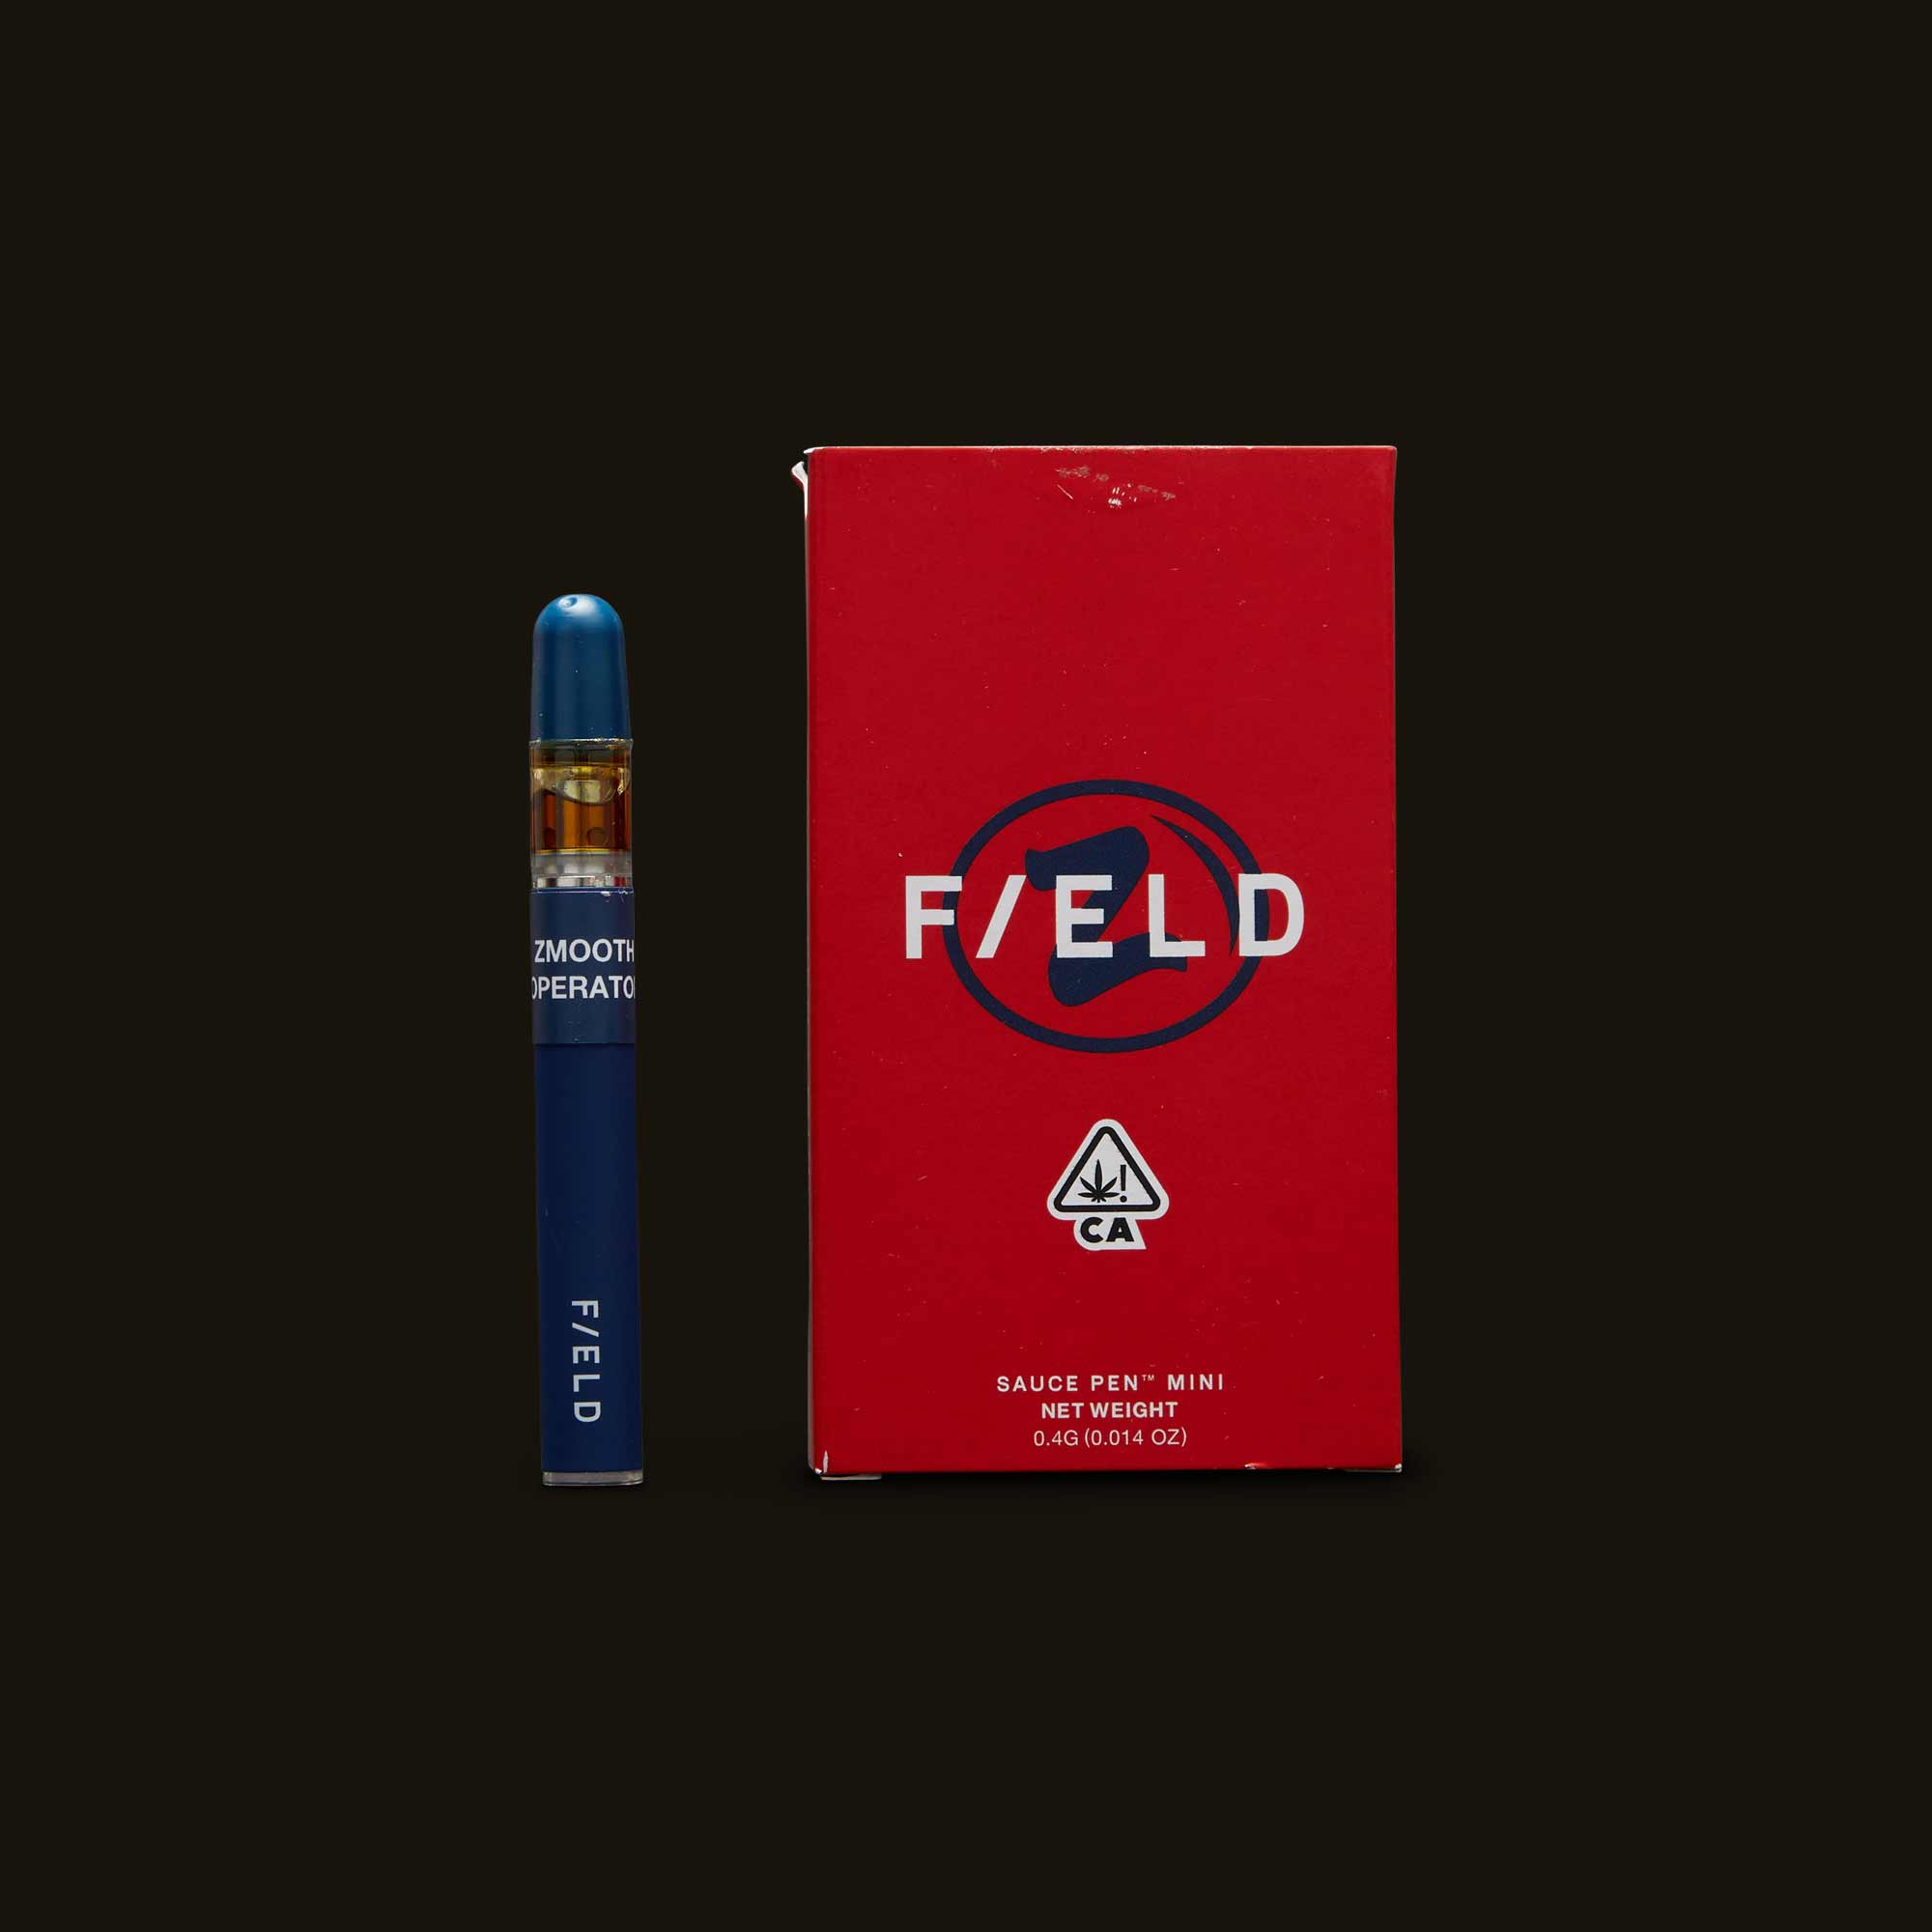 Field Extracts Zmooth Operator Sauce Pen Mini